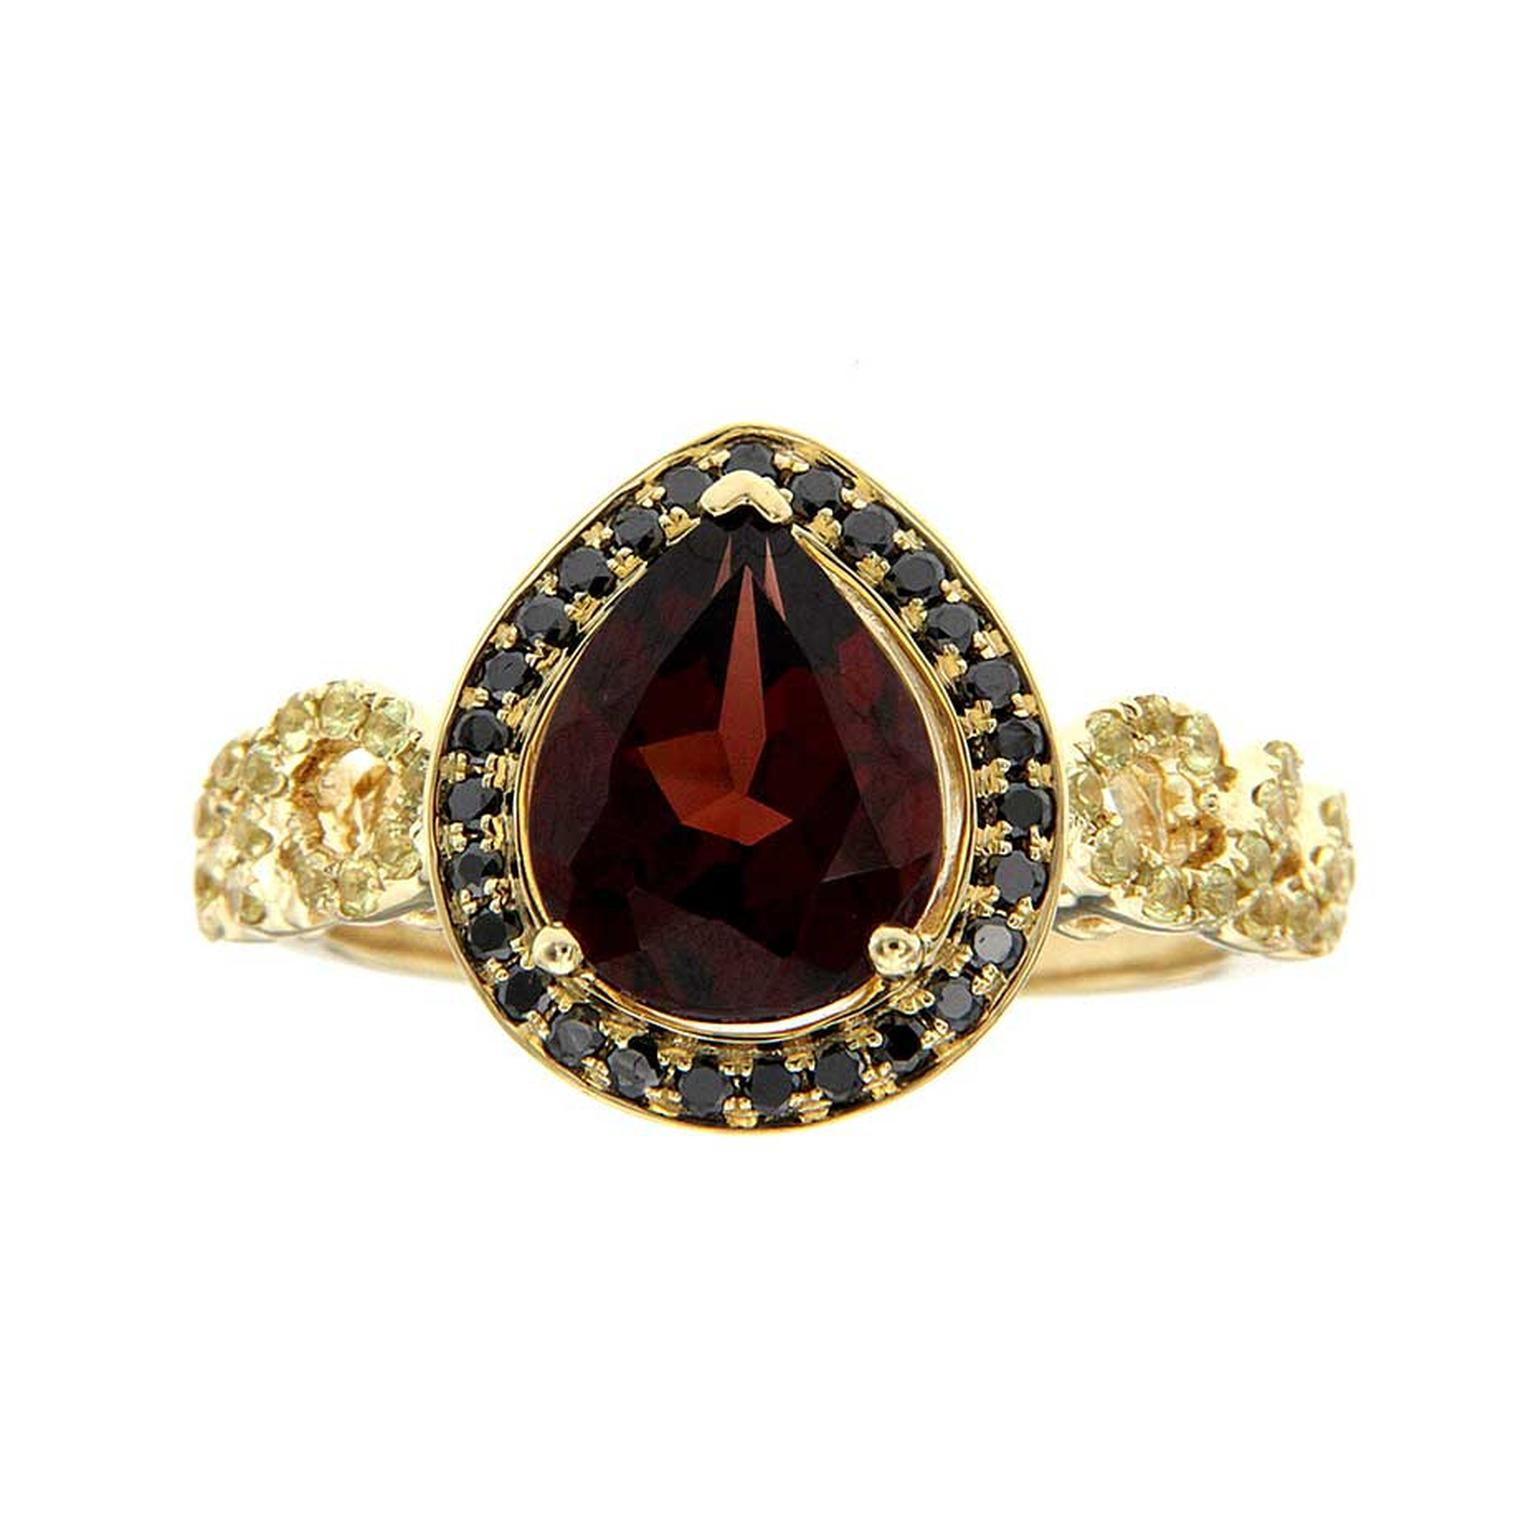 H.AZEEM King Bird of Paradise ring in yellow gold, set with a central pyrope garnet, black diamonds and yellow sapphires.